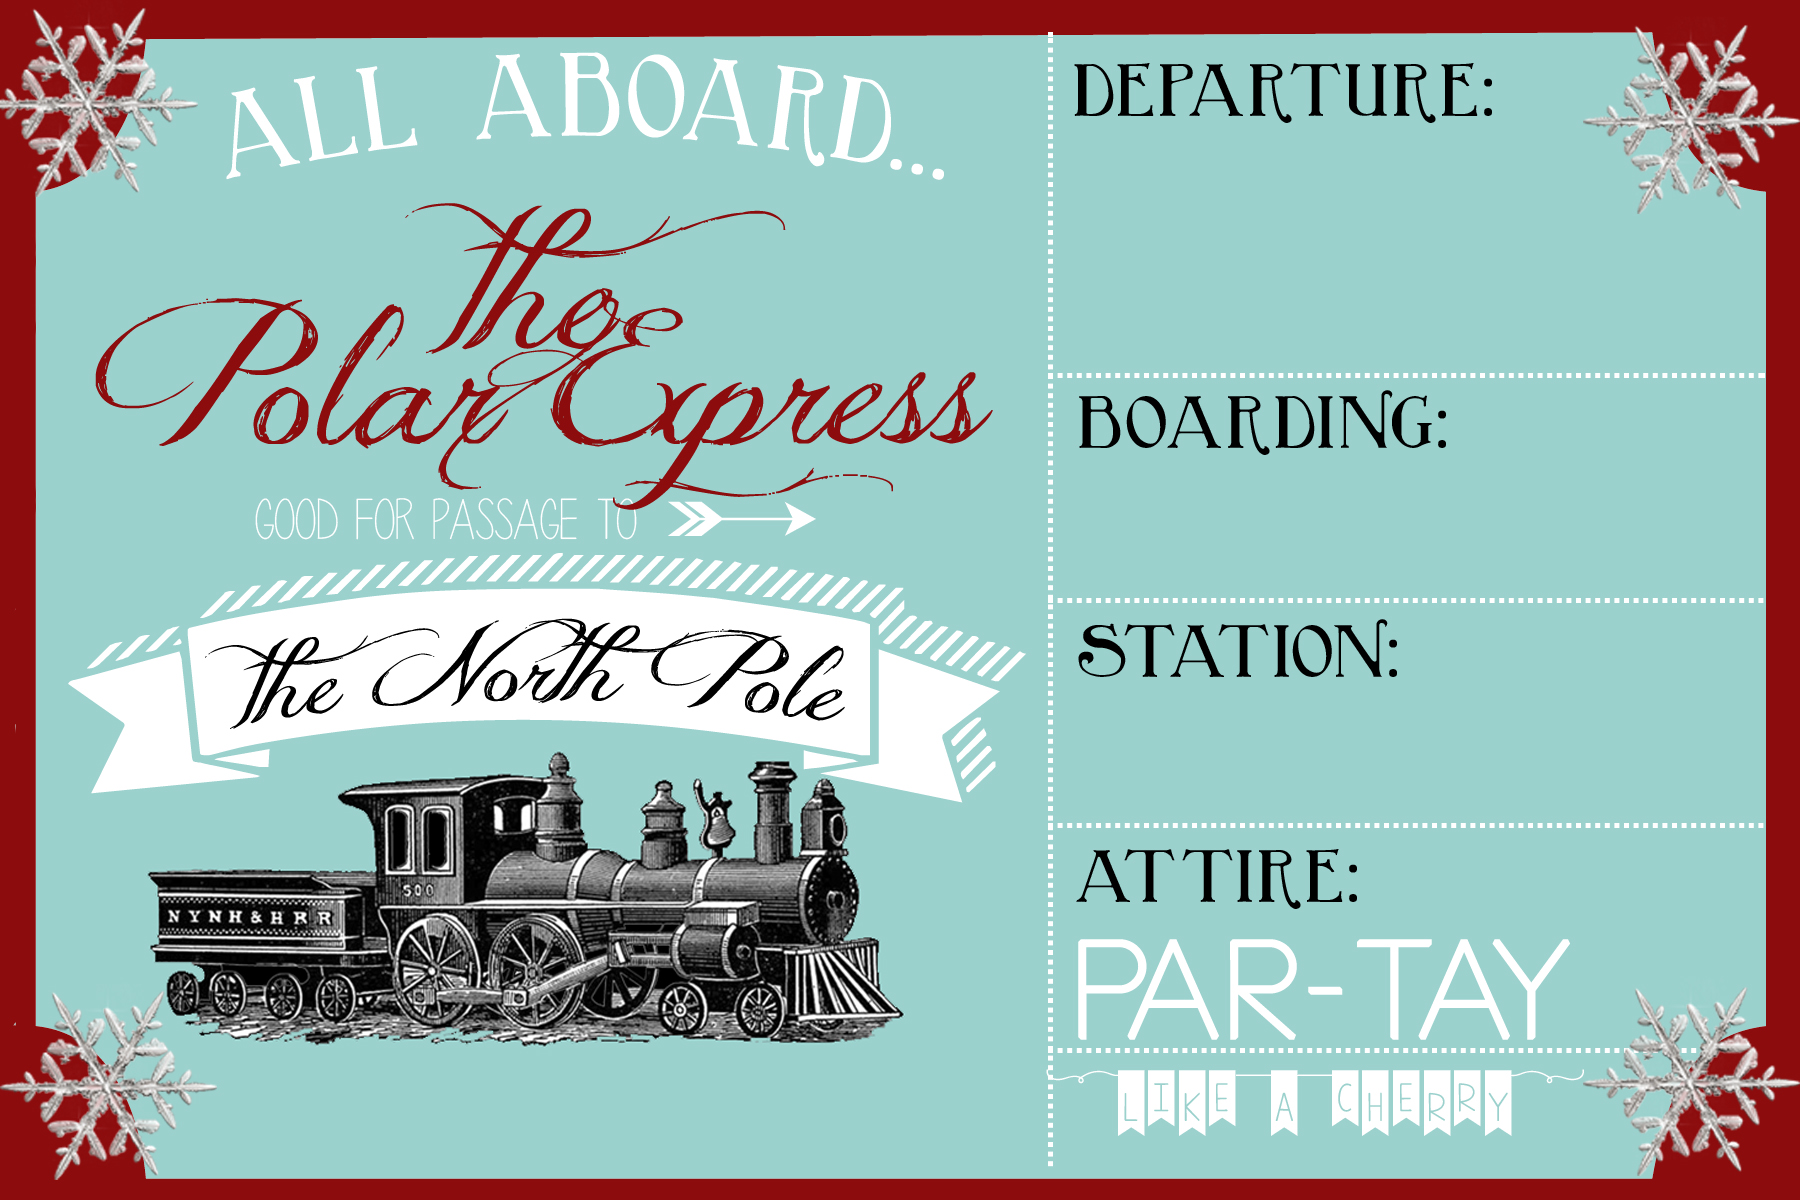 Polar express party invitation party like a cherry polar express invitation free printable template stopboris Gallery